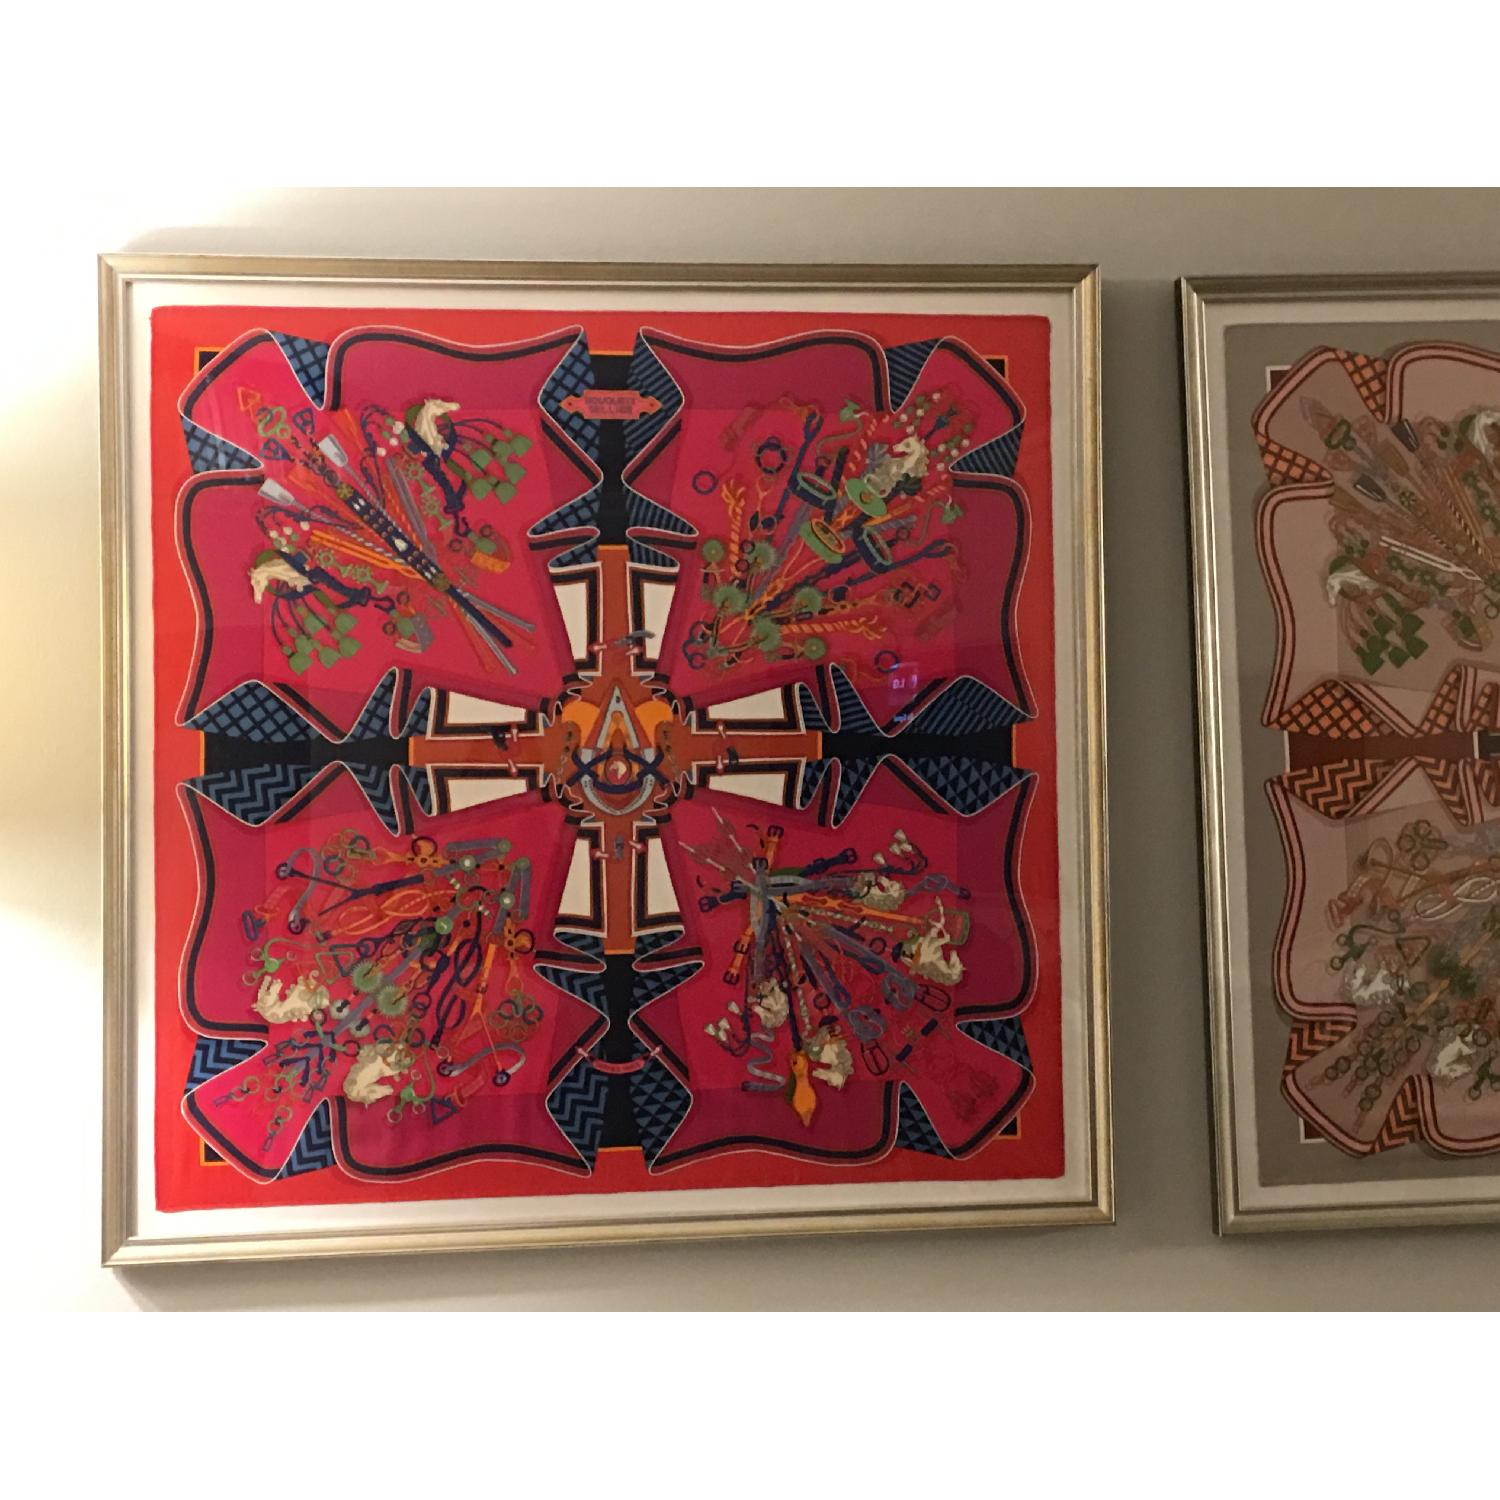 Hermes Framed Scarf Bouquet Sellier in Pink - image-2